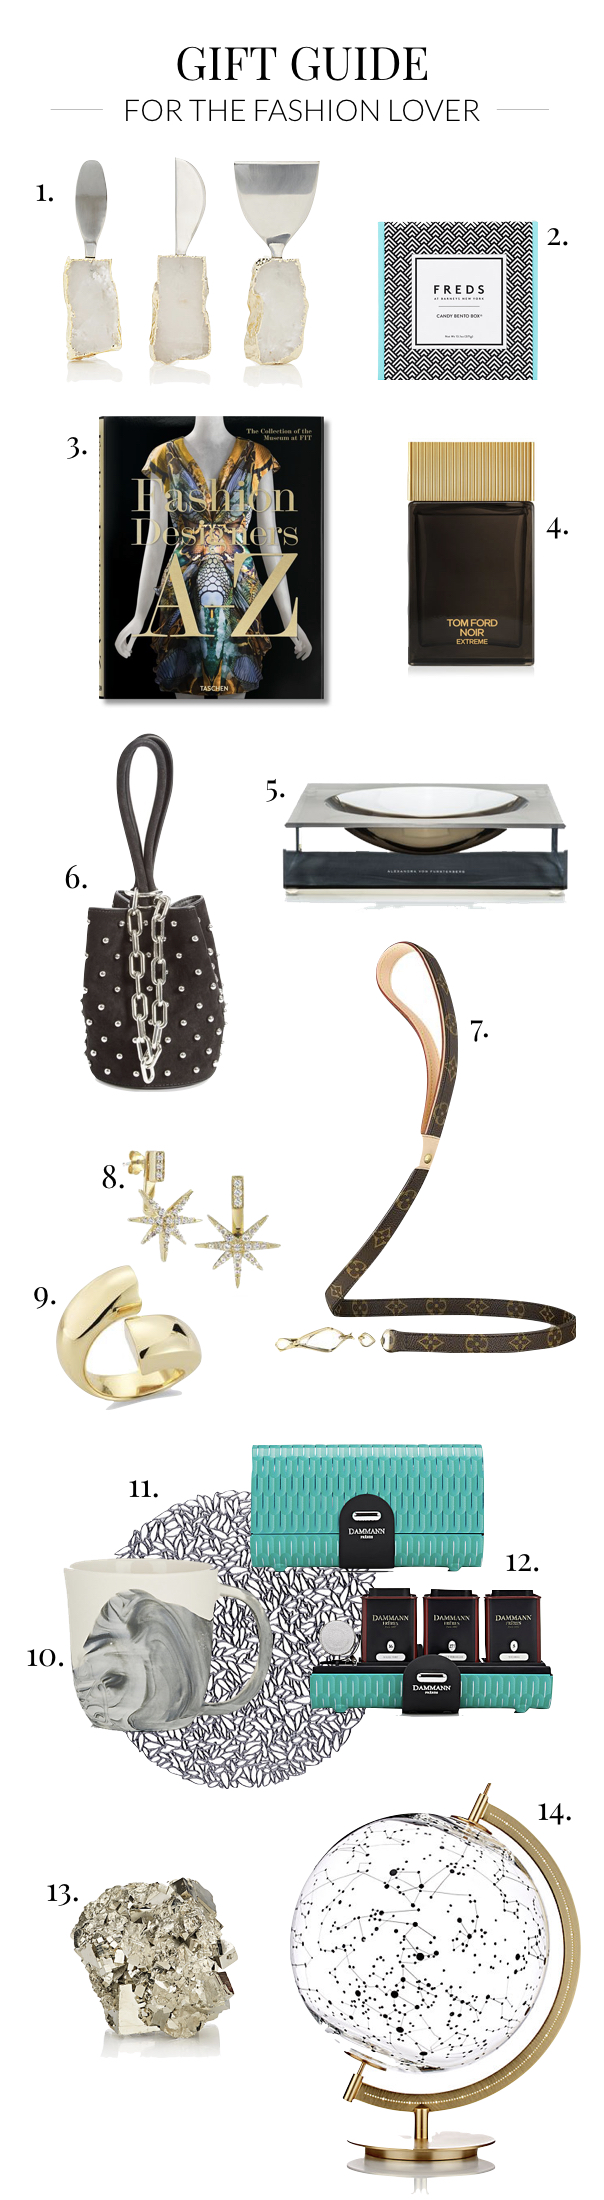 fashion-lover-gift-guide-001